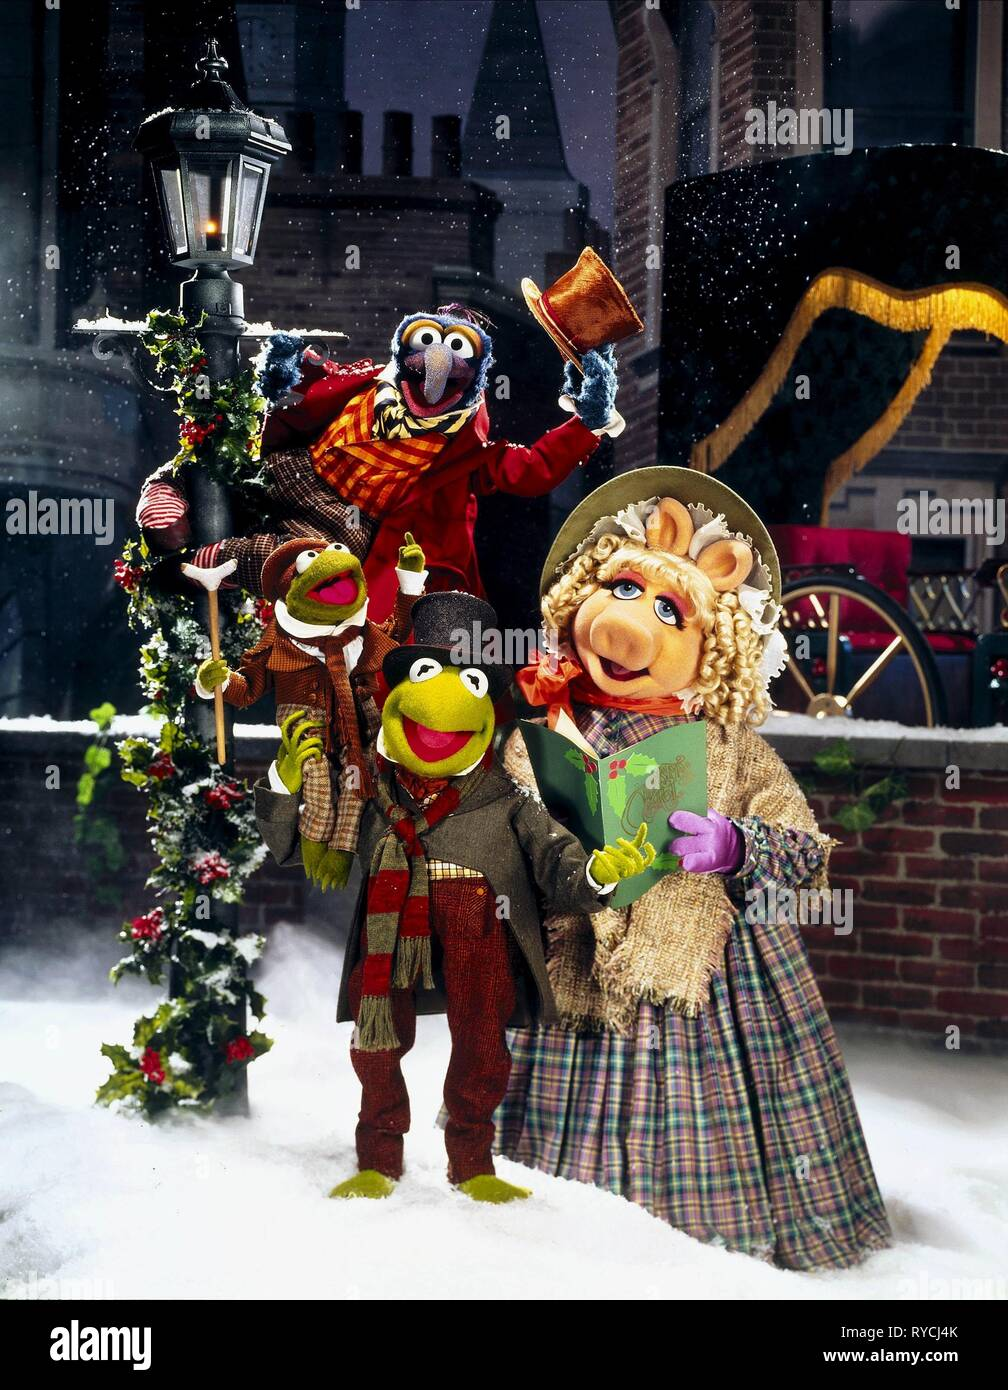 GONZO, TINY TIM, KERMIT THE FROG,MISS PIGGY, THE MUPPET CHRISTMAS CAROL, 1992 - Stock Image